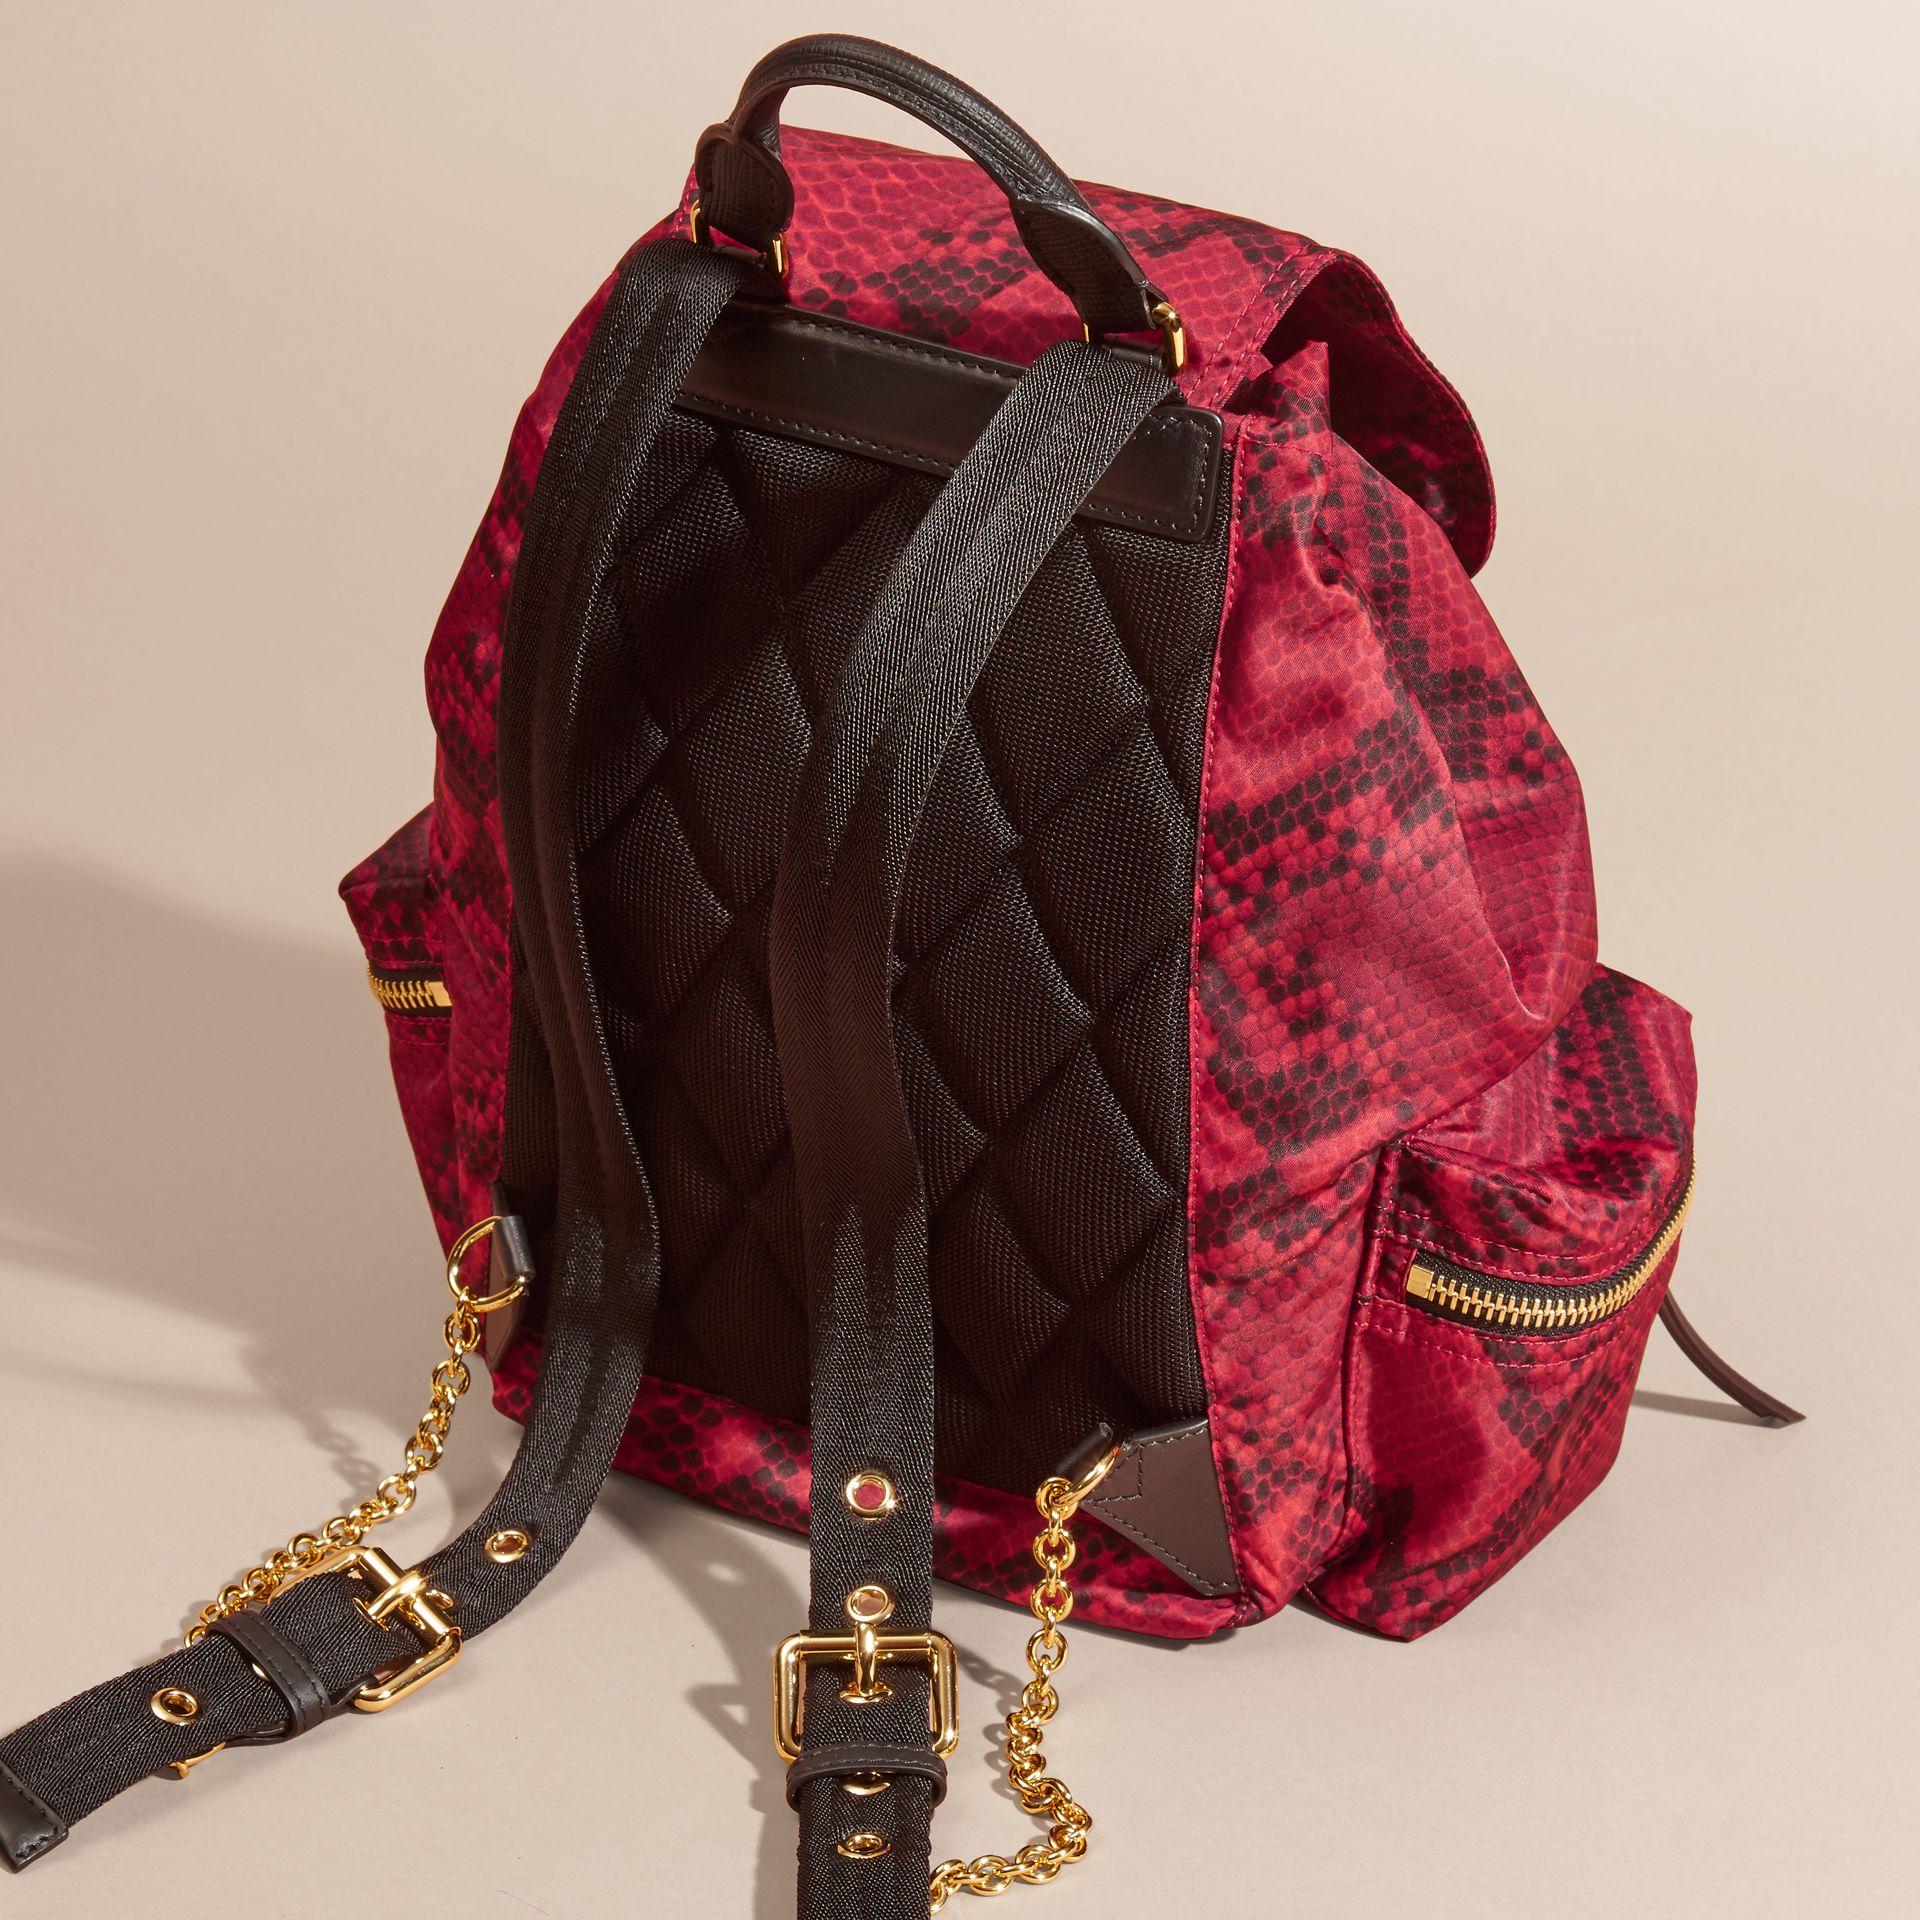 Burgundy red The Medium Rucksack in Python Print Nylon and Leather Burgundy Red - gallery image 4